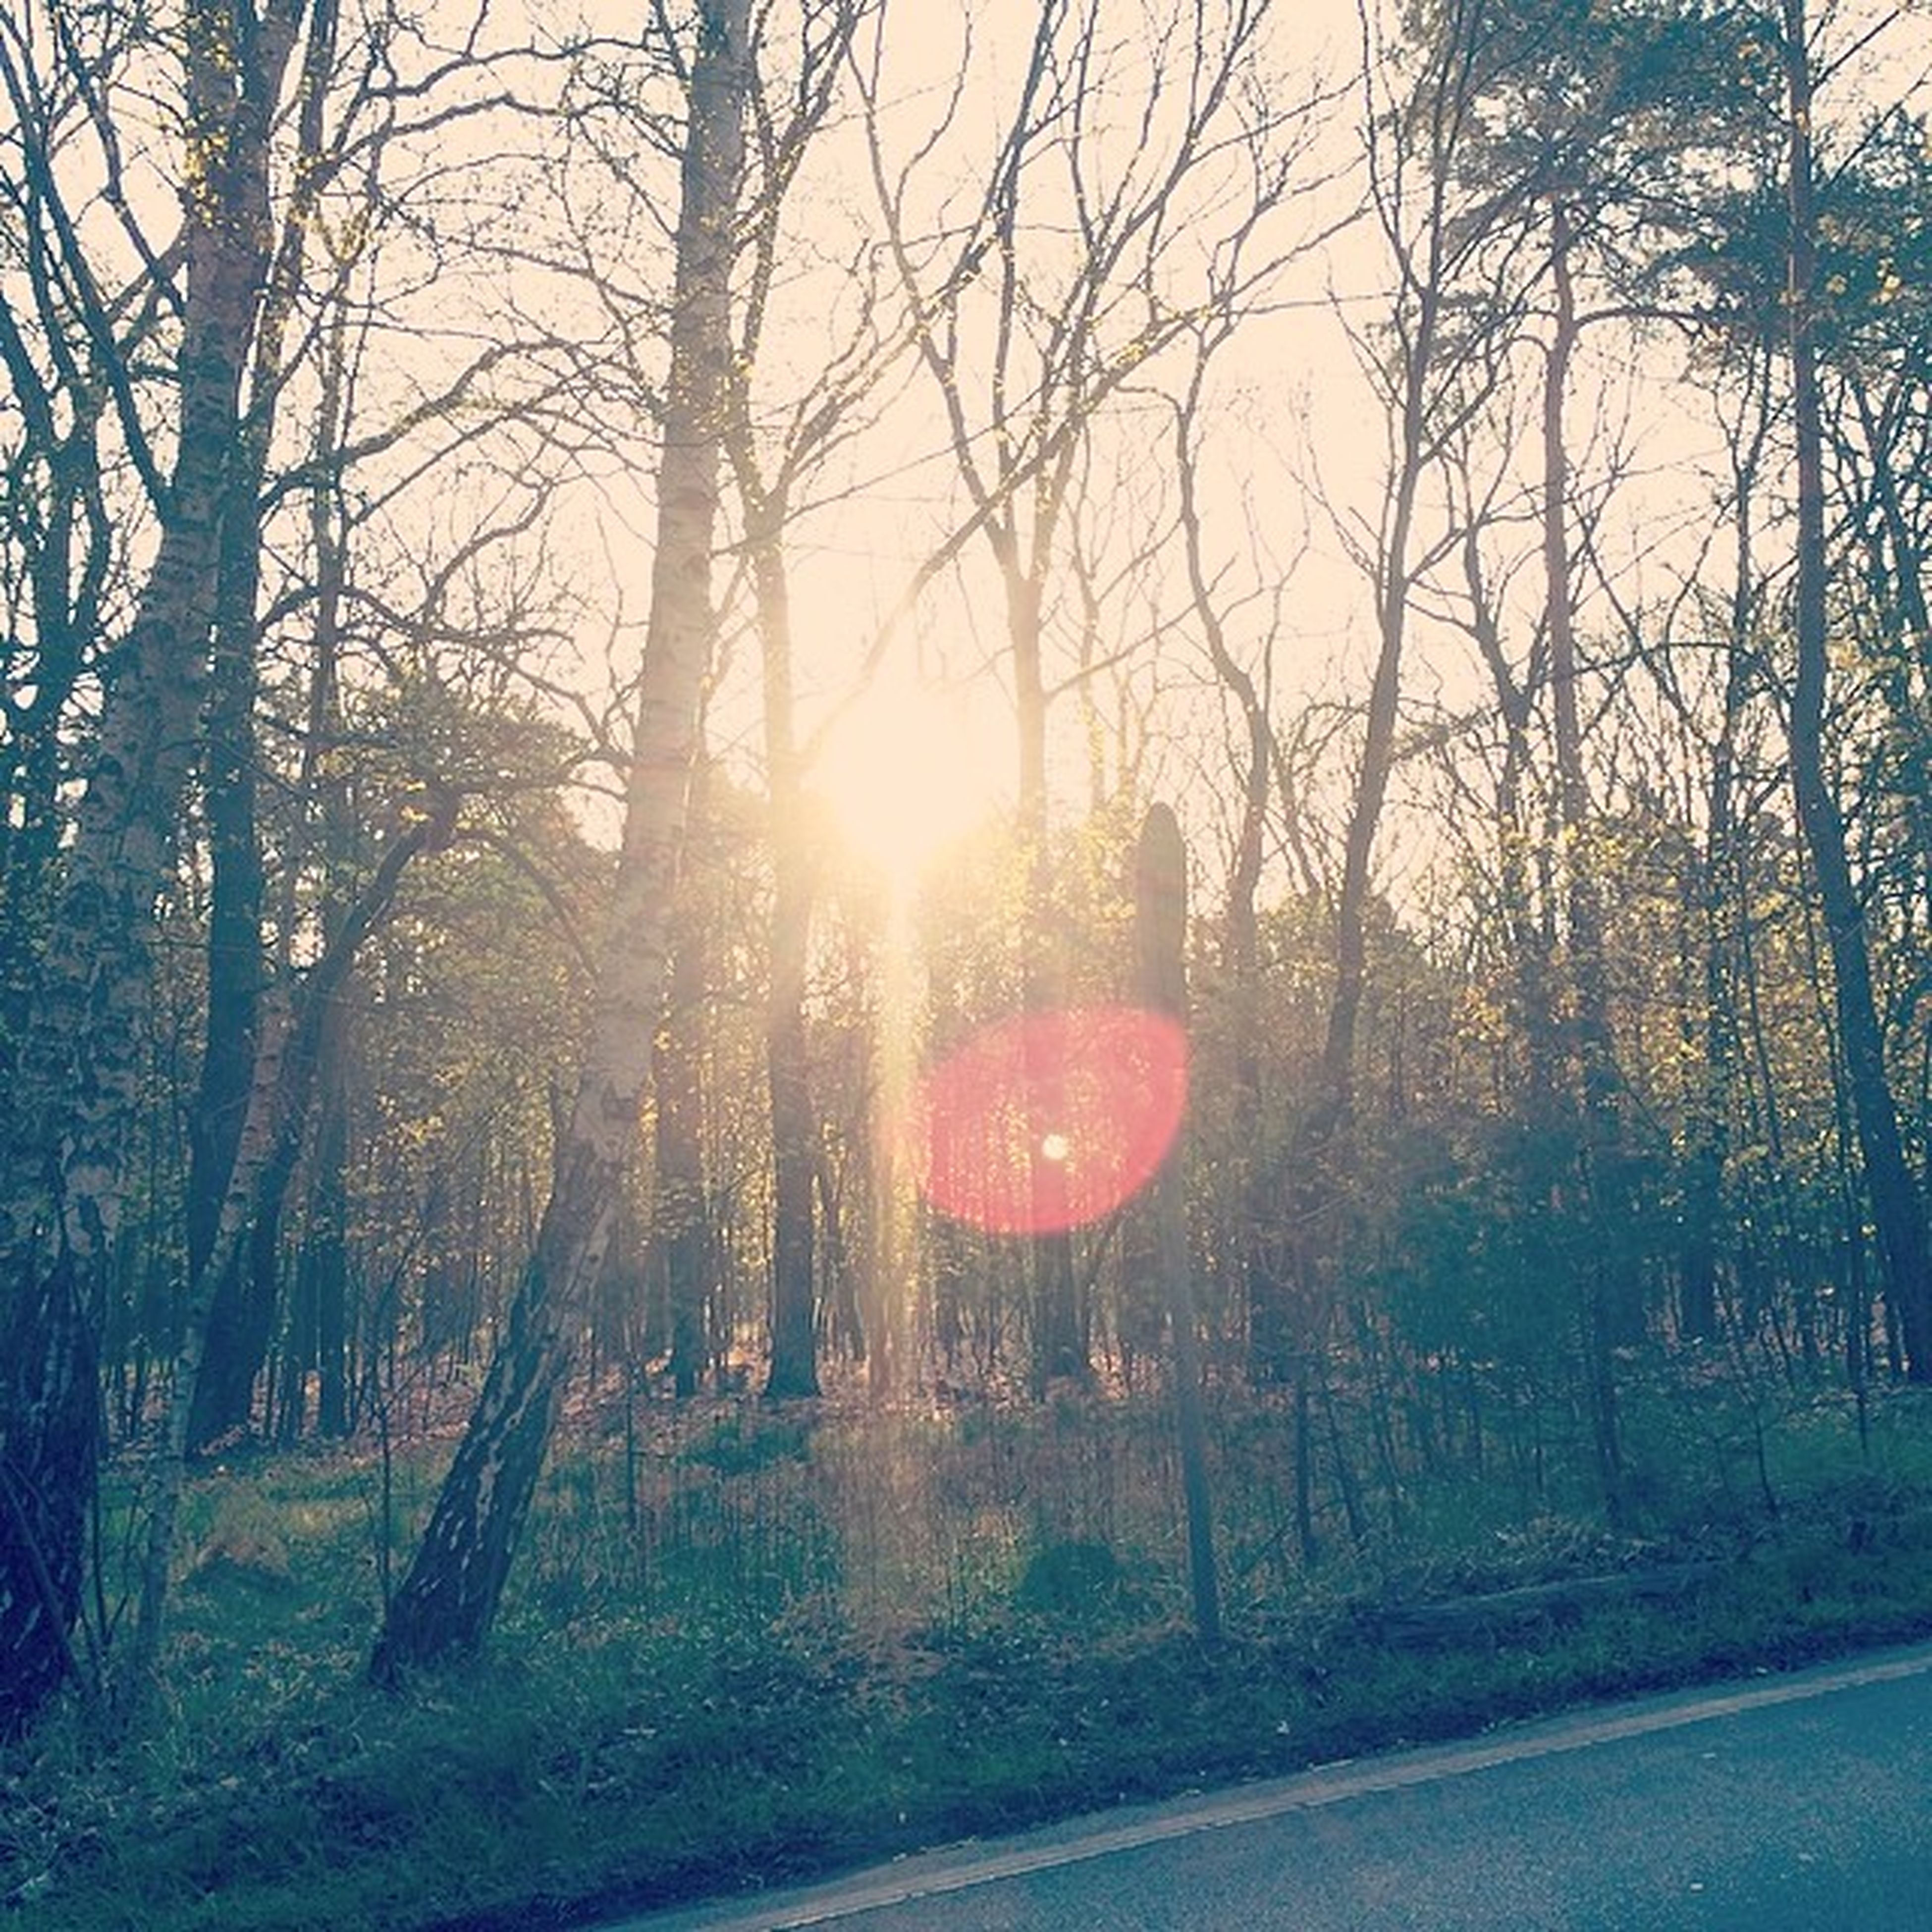 tree, sun, sunbeam, lens flare, sunlight, tranquility, tranquil scene, nature, tree trunk, landscape, bare tree, scenics, beauty in nature, field, branch, growth, grass, sunset, sky, forest